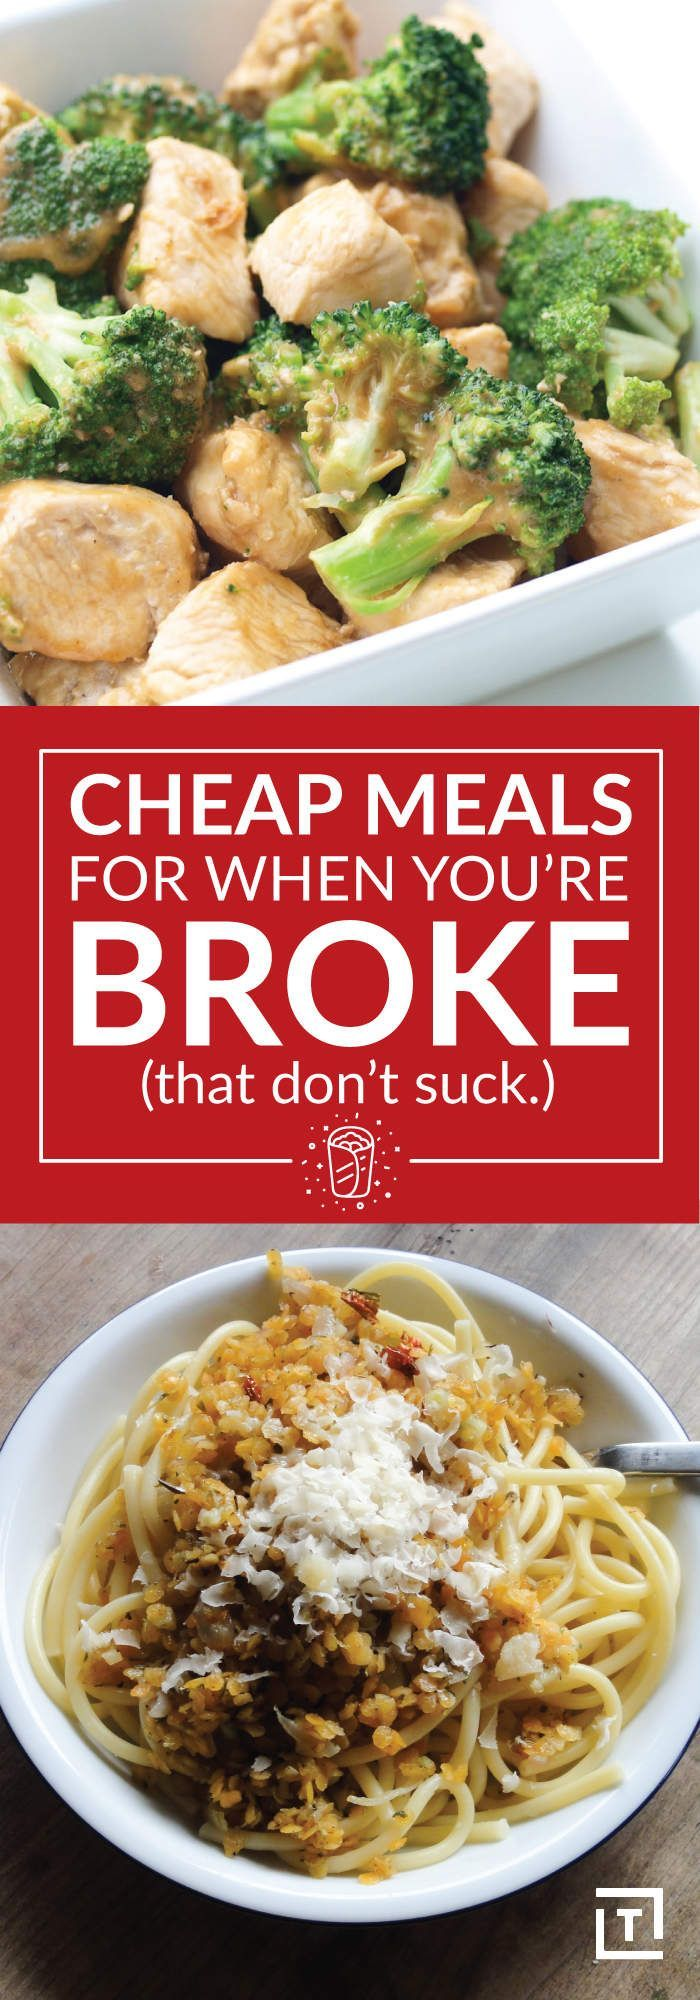 cheap meals for when you're broke (that don't suck) | saving money